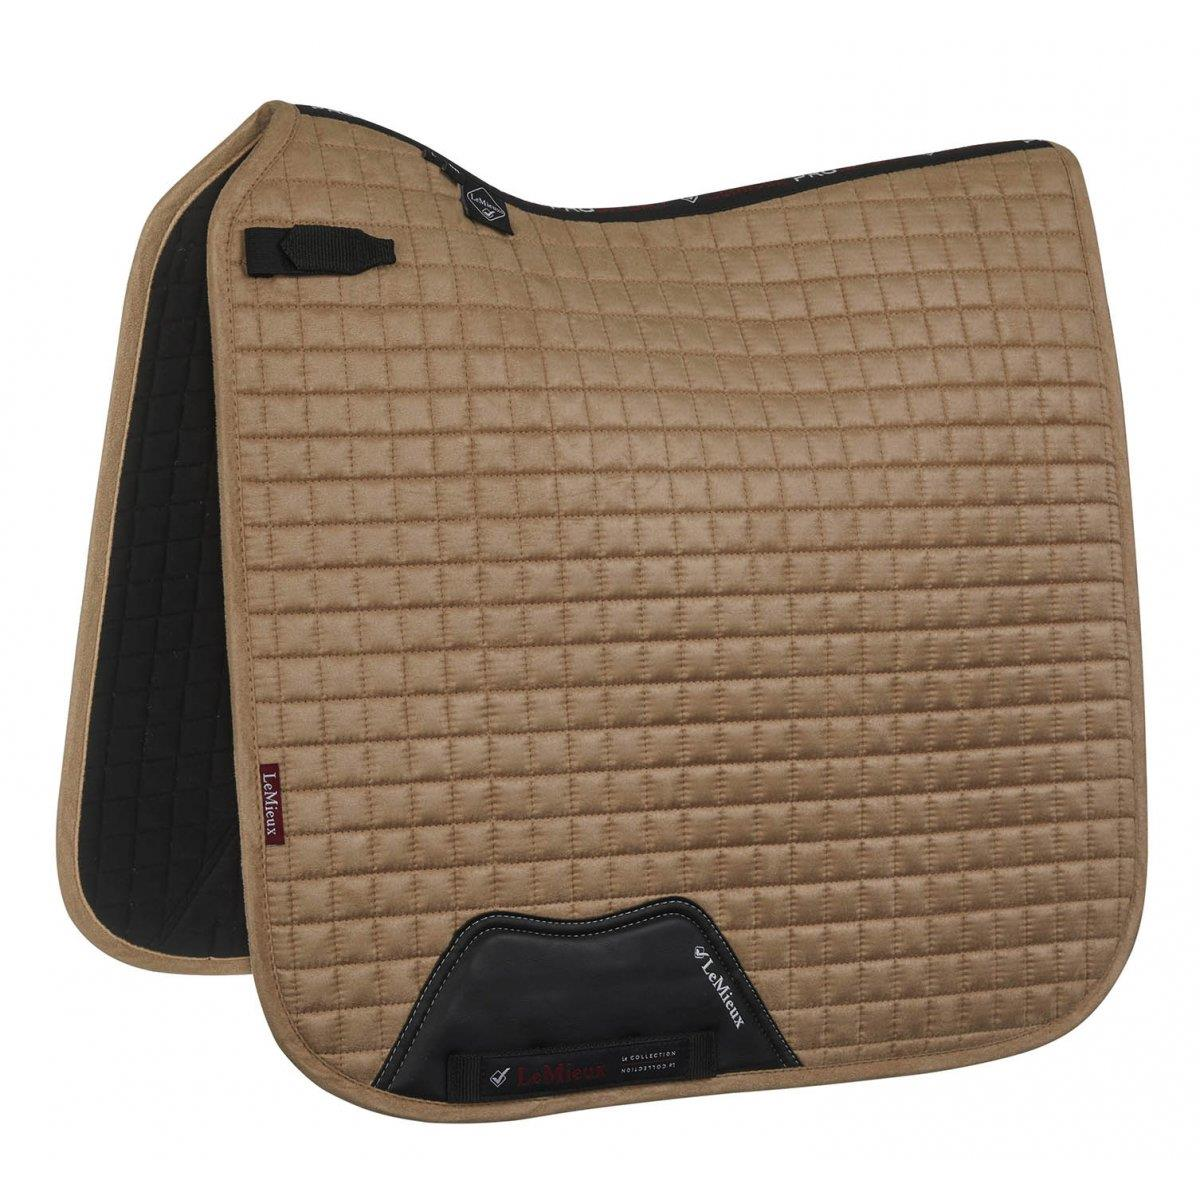 LeMieux-Prosport-Suede-Dressage-Square-Saddlecloth-All-Colours miniature 9